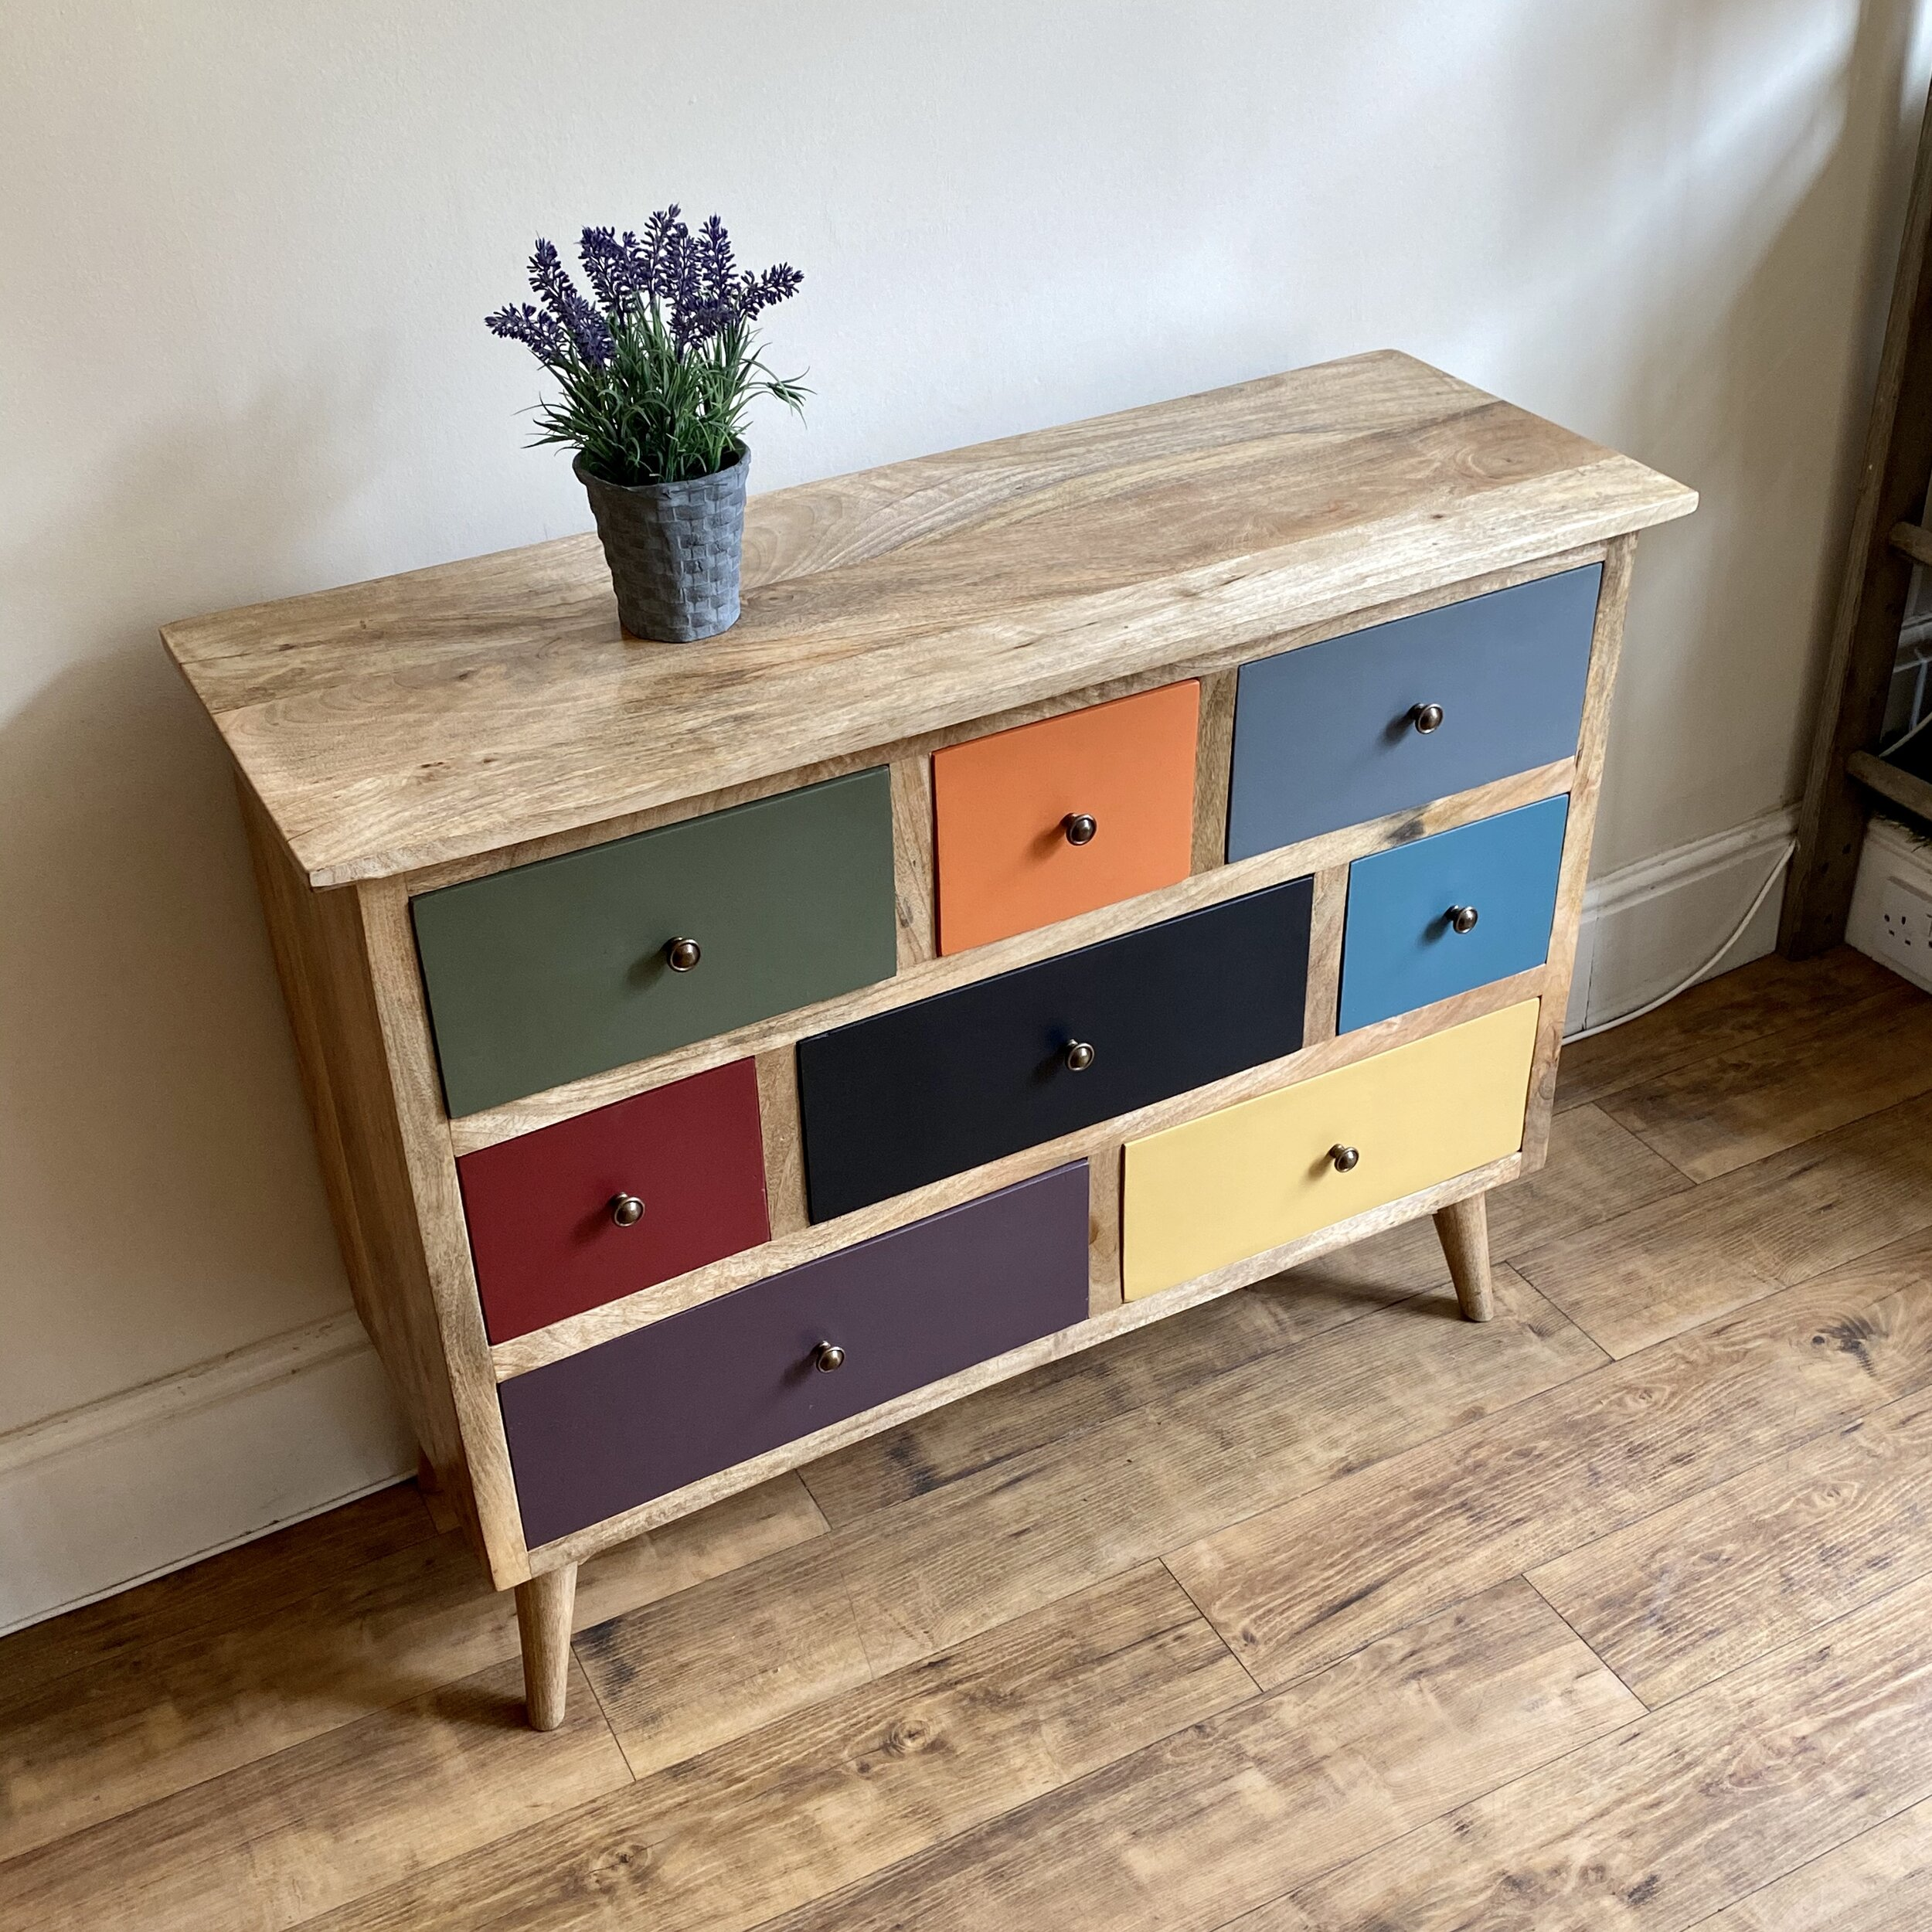 Upcycled Furniture For Sale Upcycled Creative Upcycled 8 Drawer Chest Nordic Style Upcycled Creative